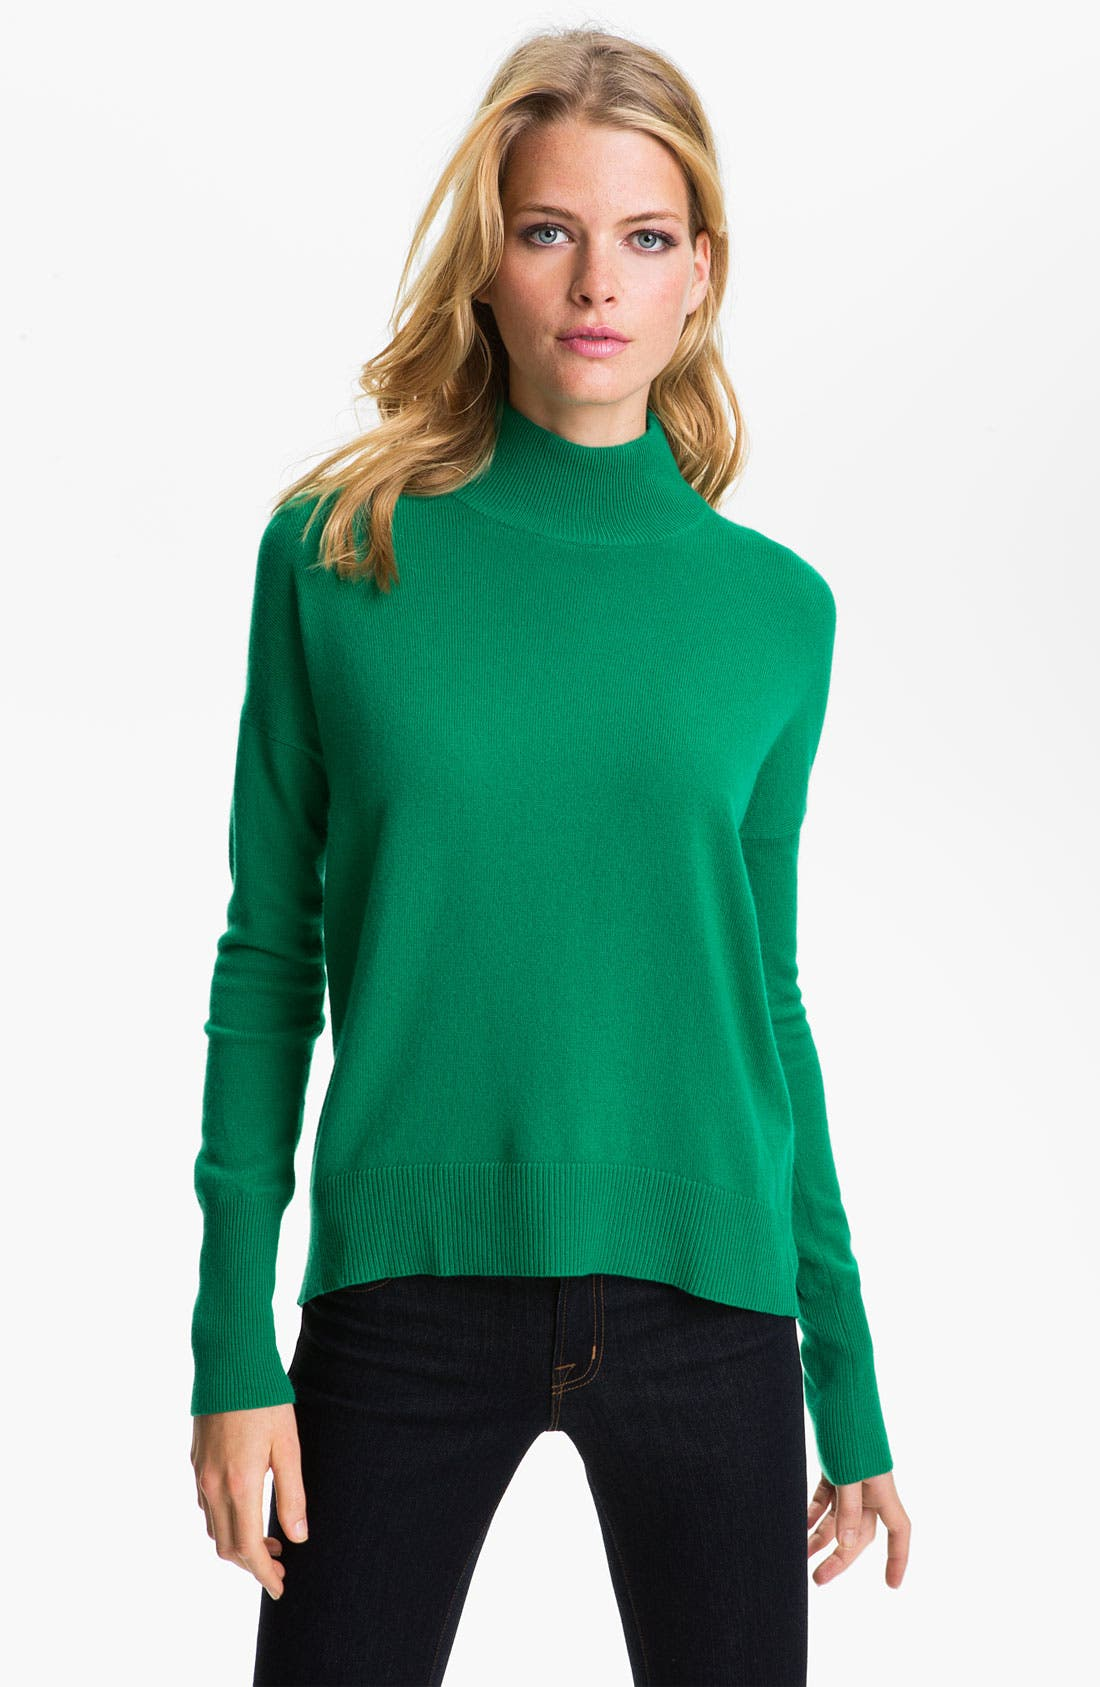 Alternate Image 1 Selected - Theory 'Sutton B.' Cashmere Sweater (Online Exclusive)